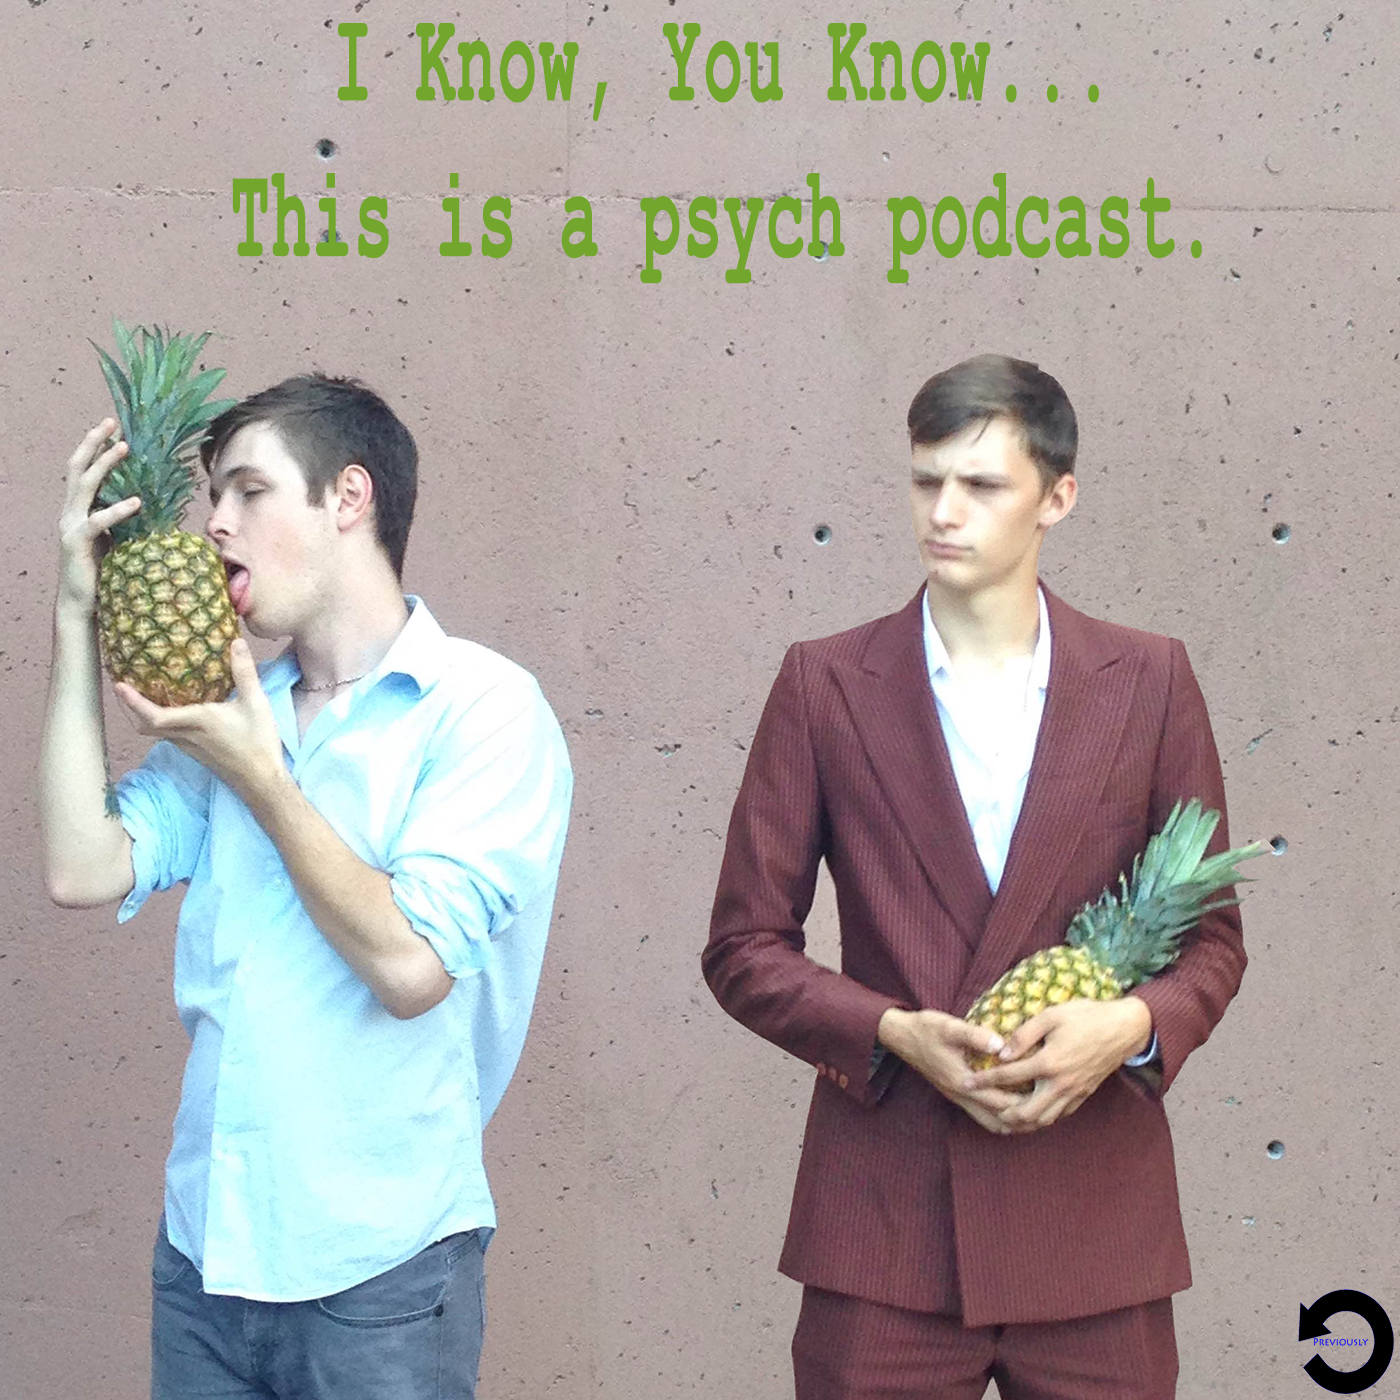 I Know, You Know... This is a psych podcast